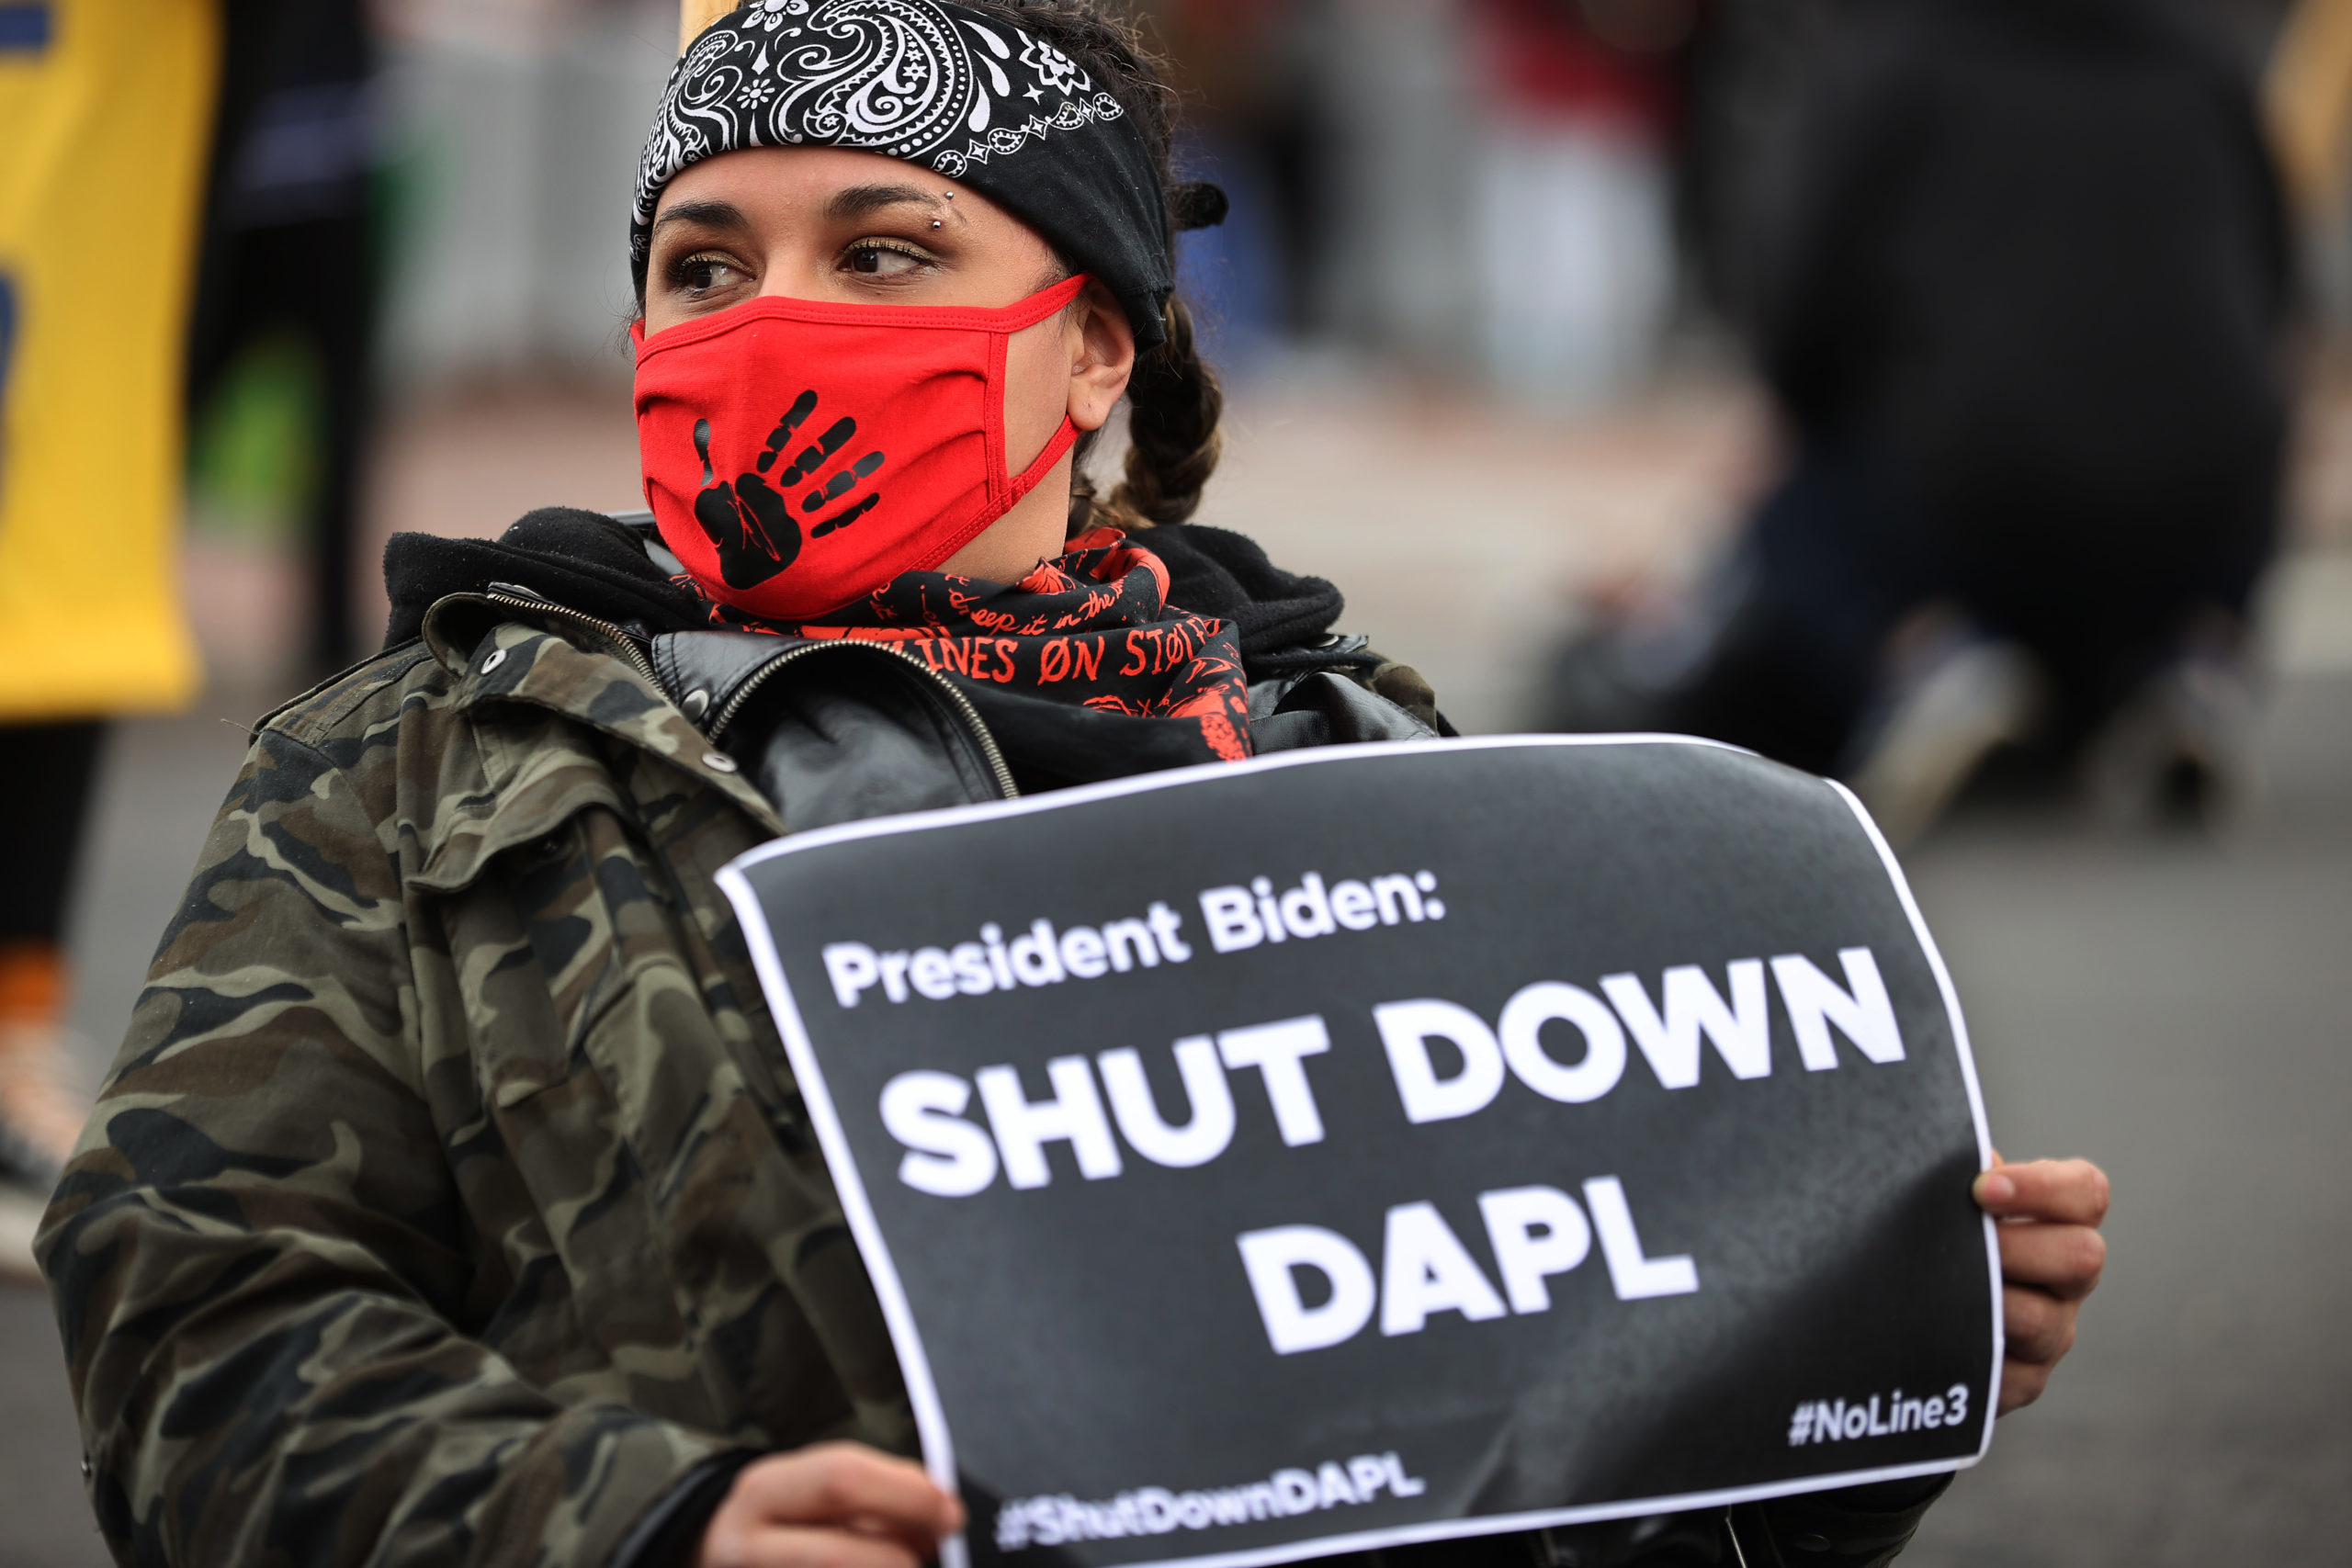 An indigenous environmental activist attaches herself to a large tripod using a bike lock, blocking traffic near Black Lives Matter Plaza on the north side of the White House as part of a protest against oil pipelines April 01, 2021 in Washington, DC. (Photo by Chip Somodevilla/Getty Images)